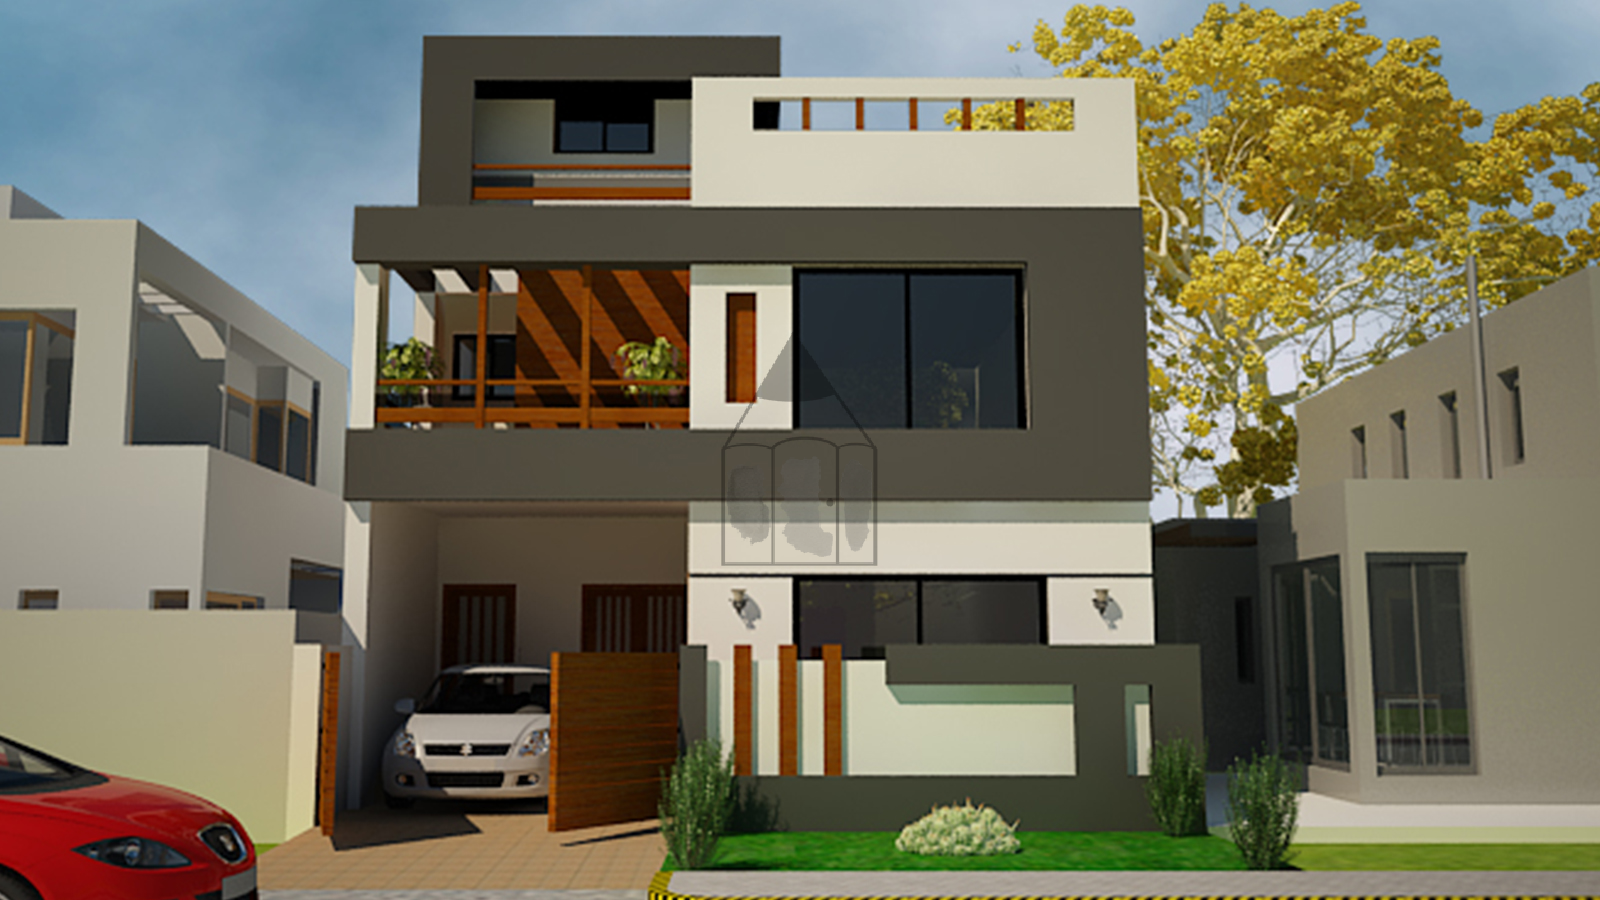 5 marla house front design ashfaq for Home design 5 marla corner